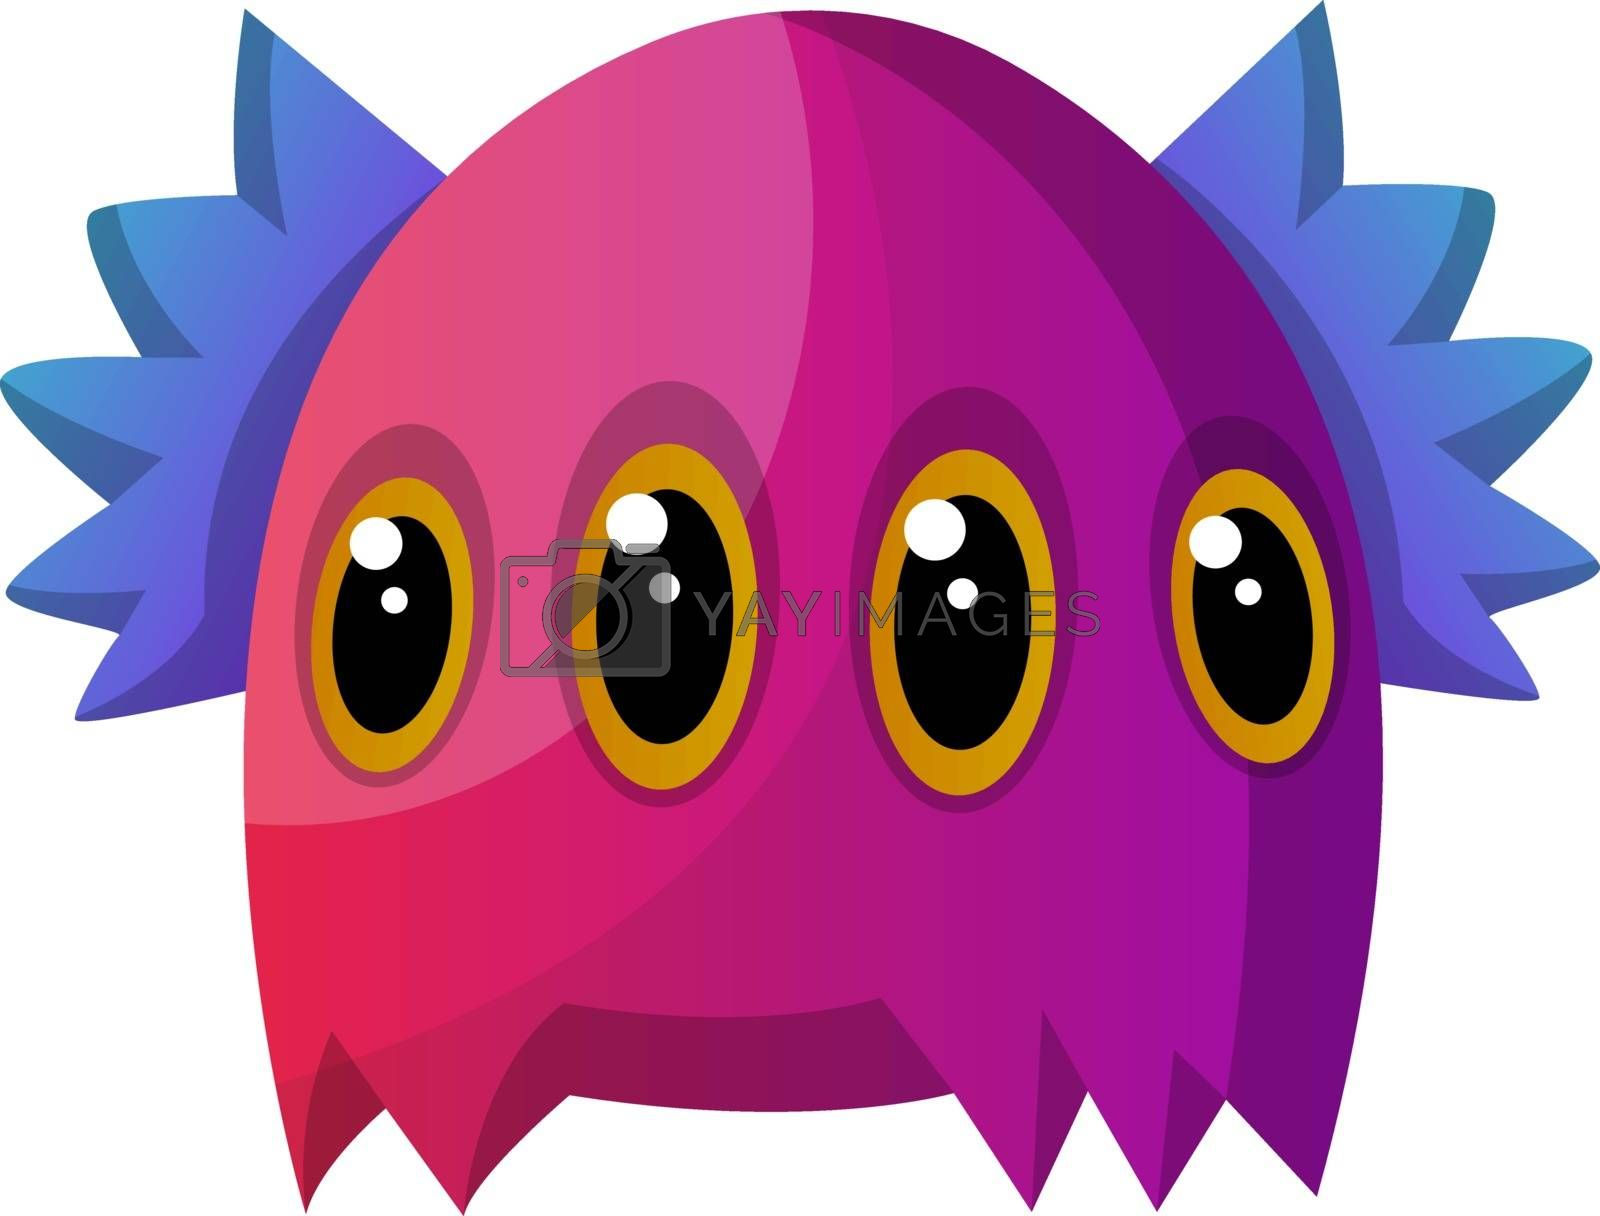 Royalty free image of Purple monster with four eyes illustration vector on white backg by Morphart